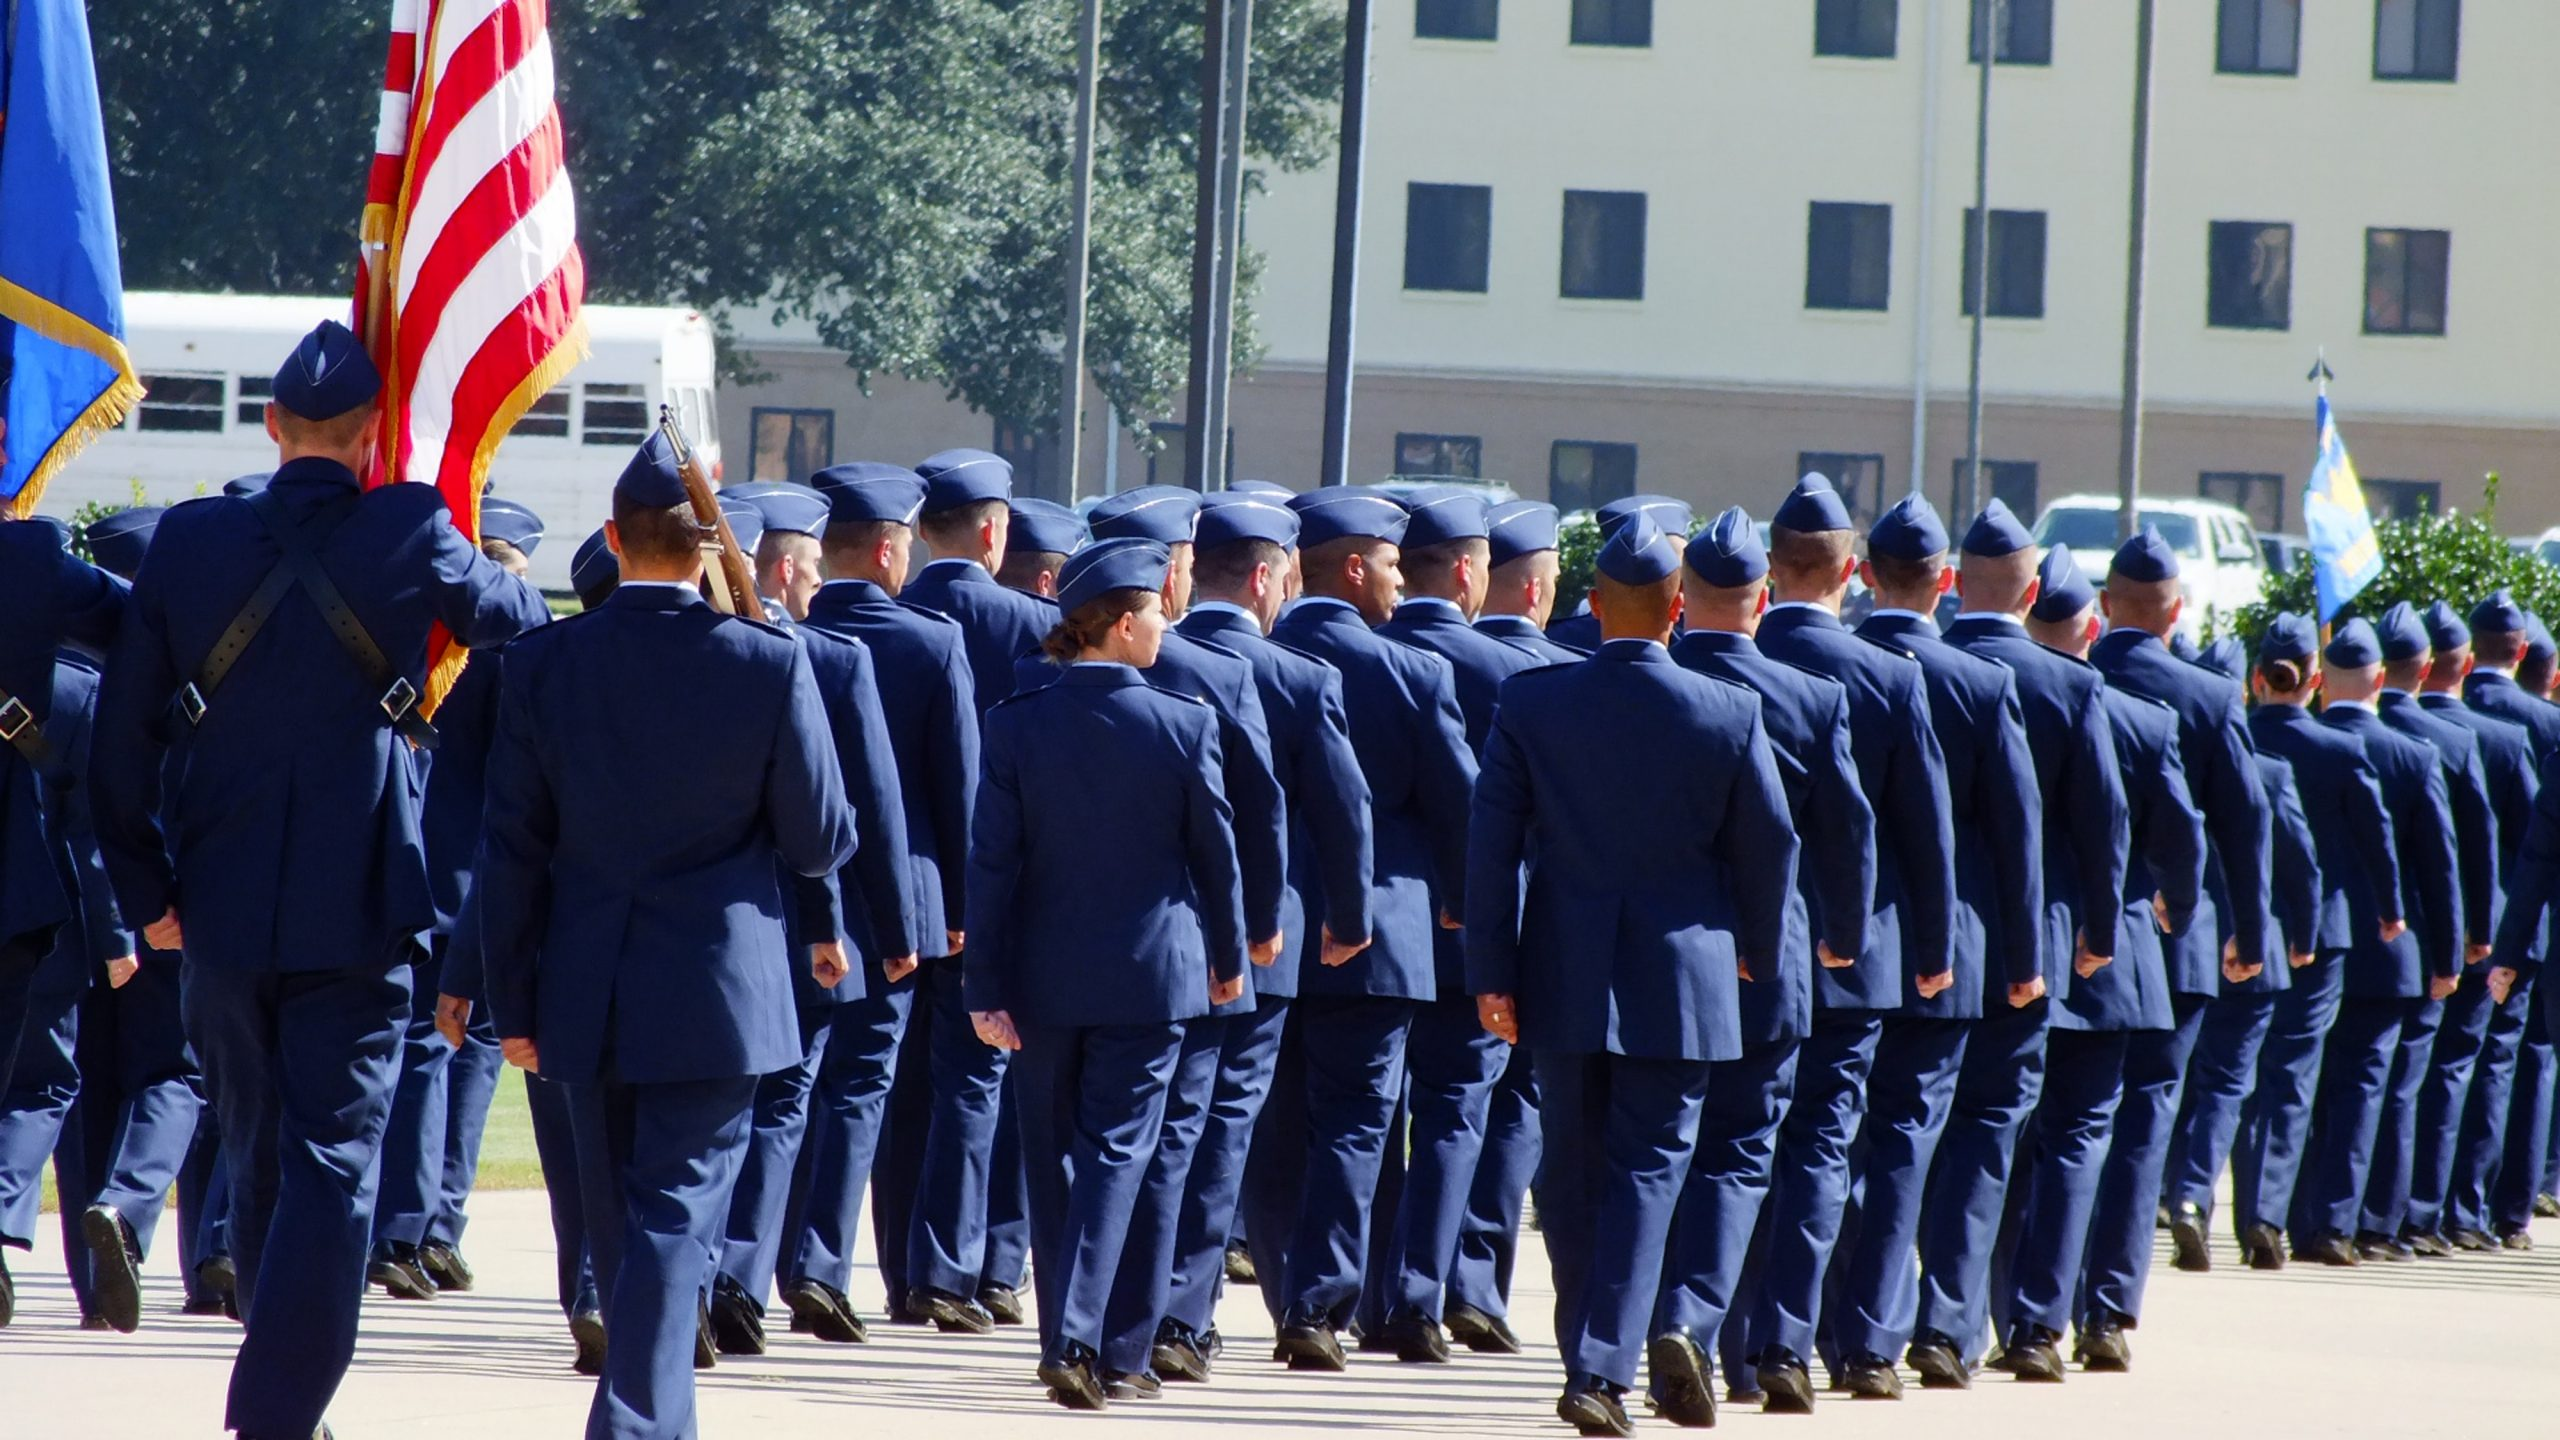 air force military airmen in blues marching with American flag